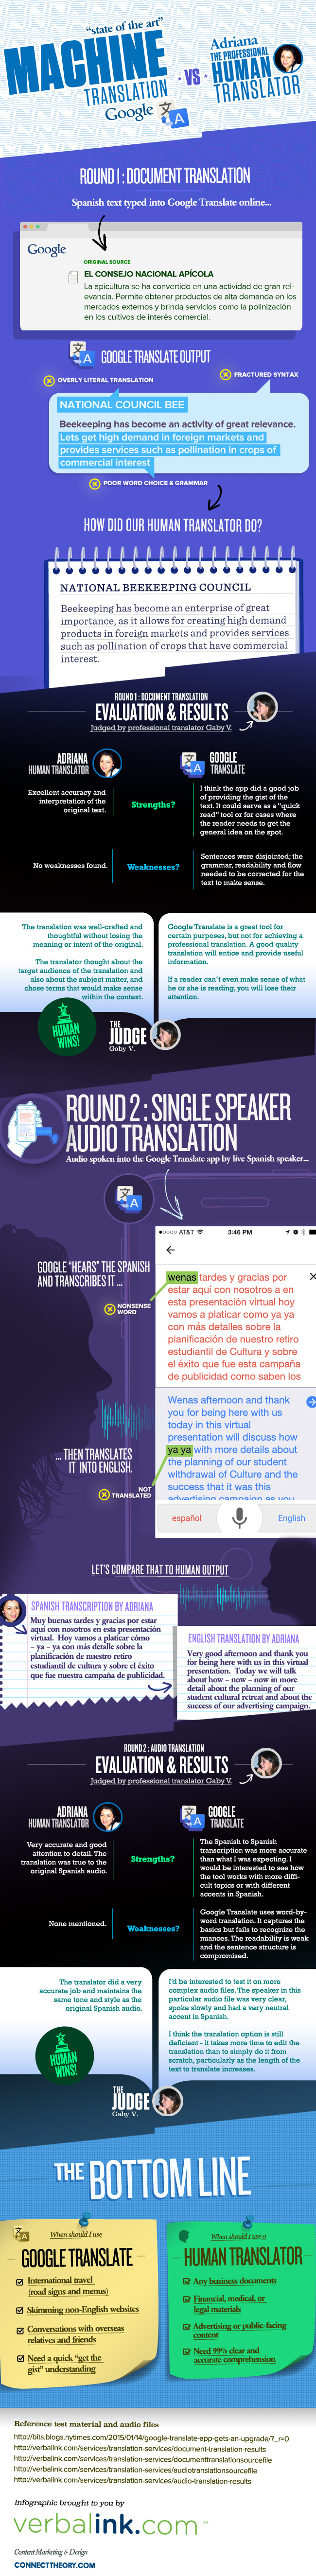 verbal-ink-translation-infographic-final1